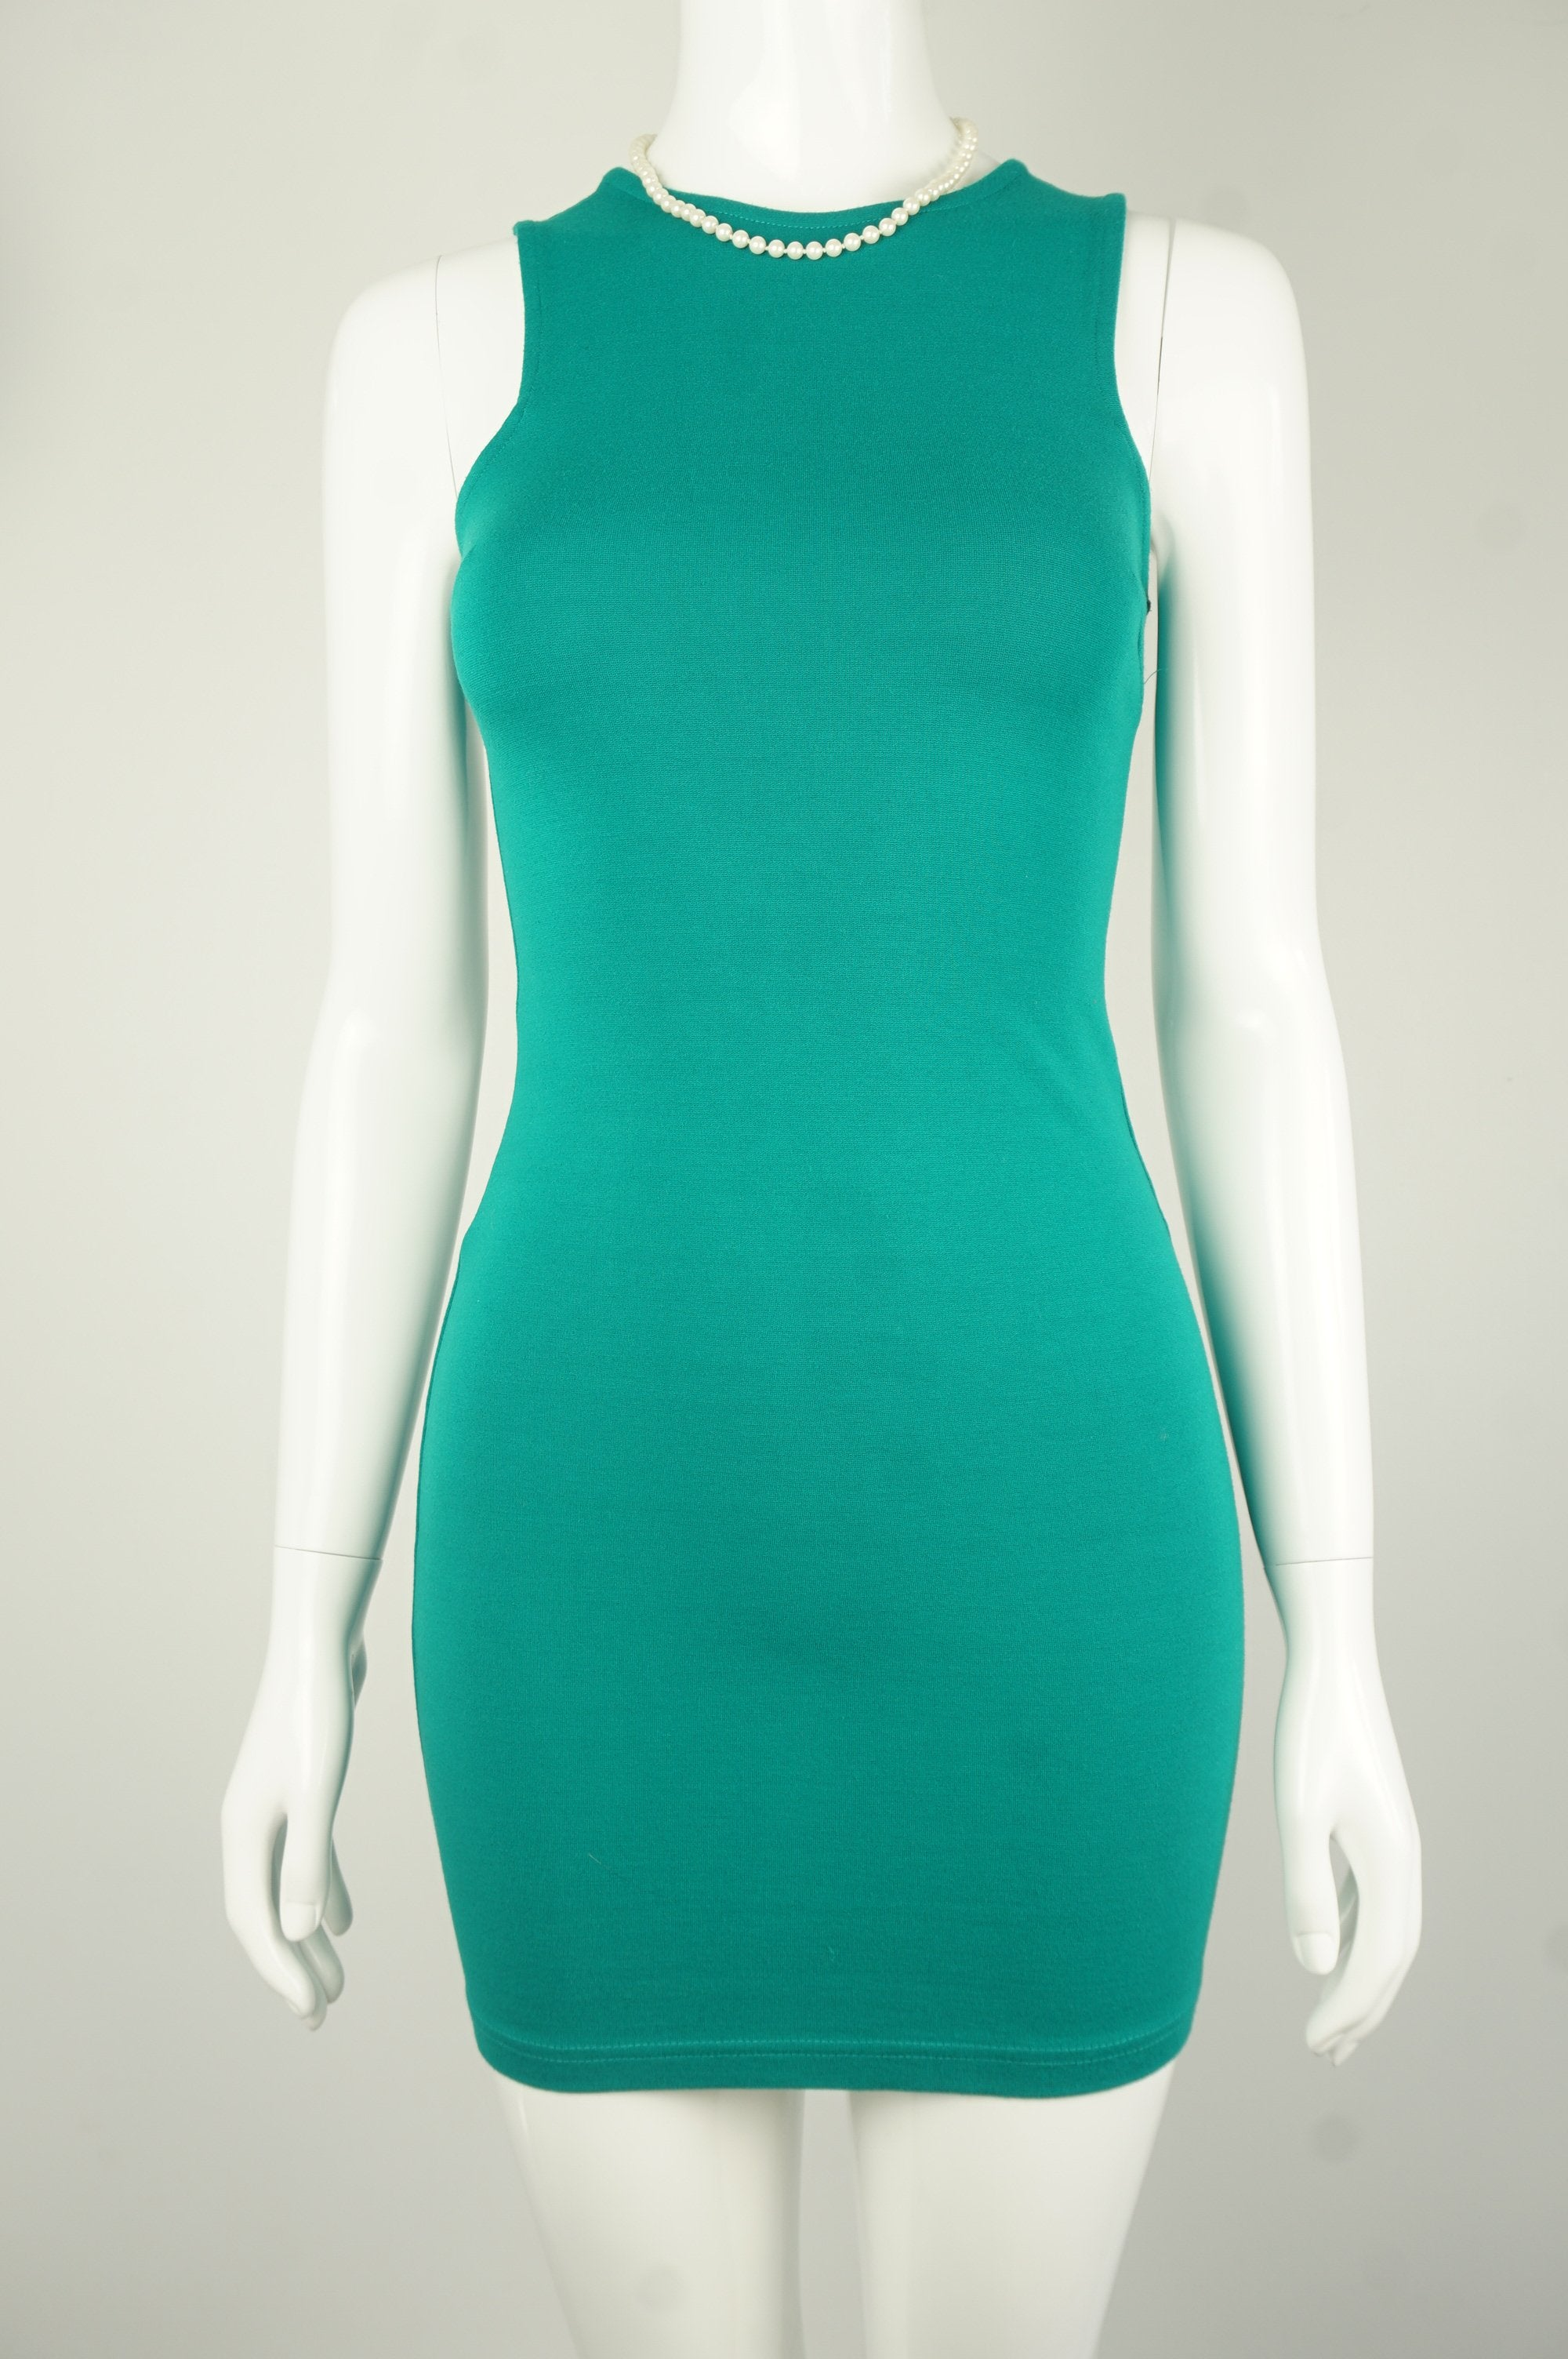 Forever 21 Vibrant Turquoise Bodycon Dress, We are loving this bright and shining bodycon dress for you! Made from four-stretchy fabric, this dress will color up your day and the party you're going to! , Green, 4-way stretchy fabric, women's Dresses & Rompers, women's Green Dresses & Rompers, Forever 21 women's Dresses & Rompers, Bodycon turquoise dress, bodycon party green dress, basic comfy stretchy sheath dress